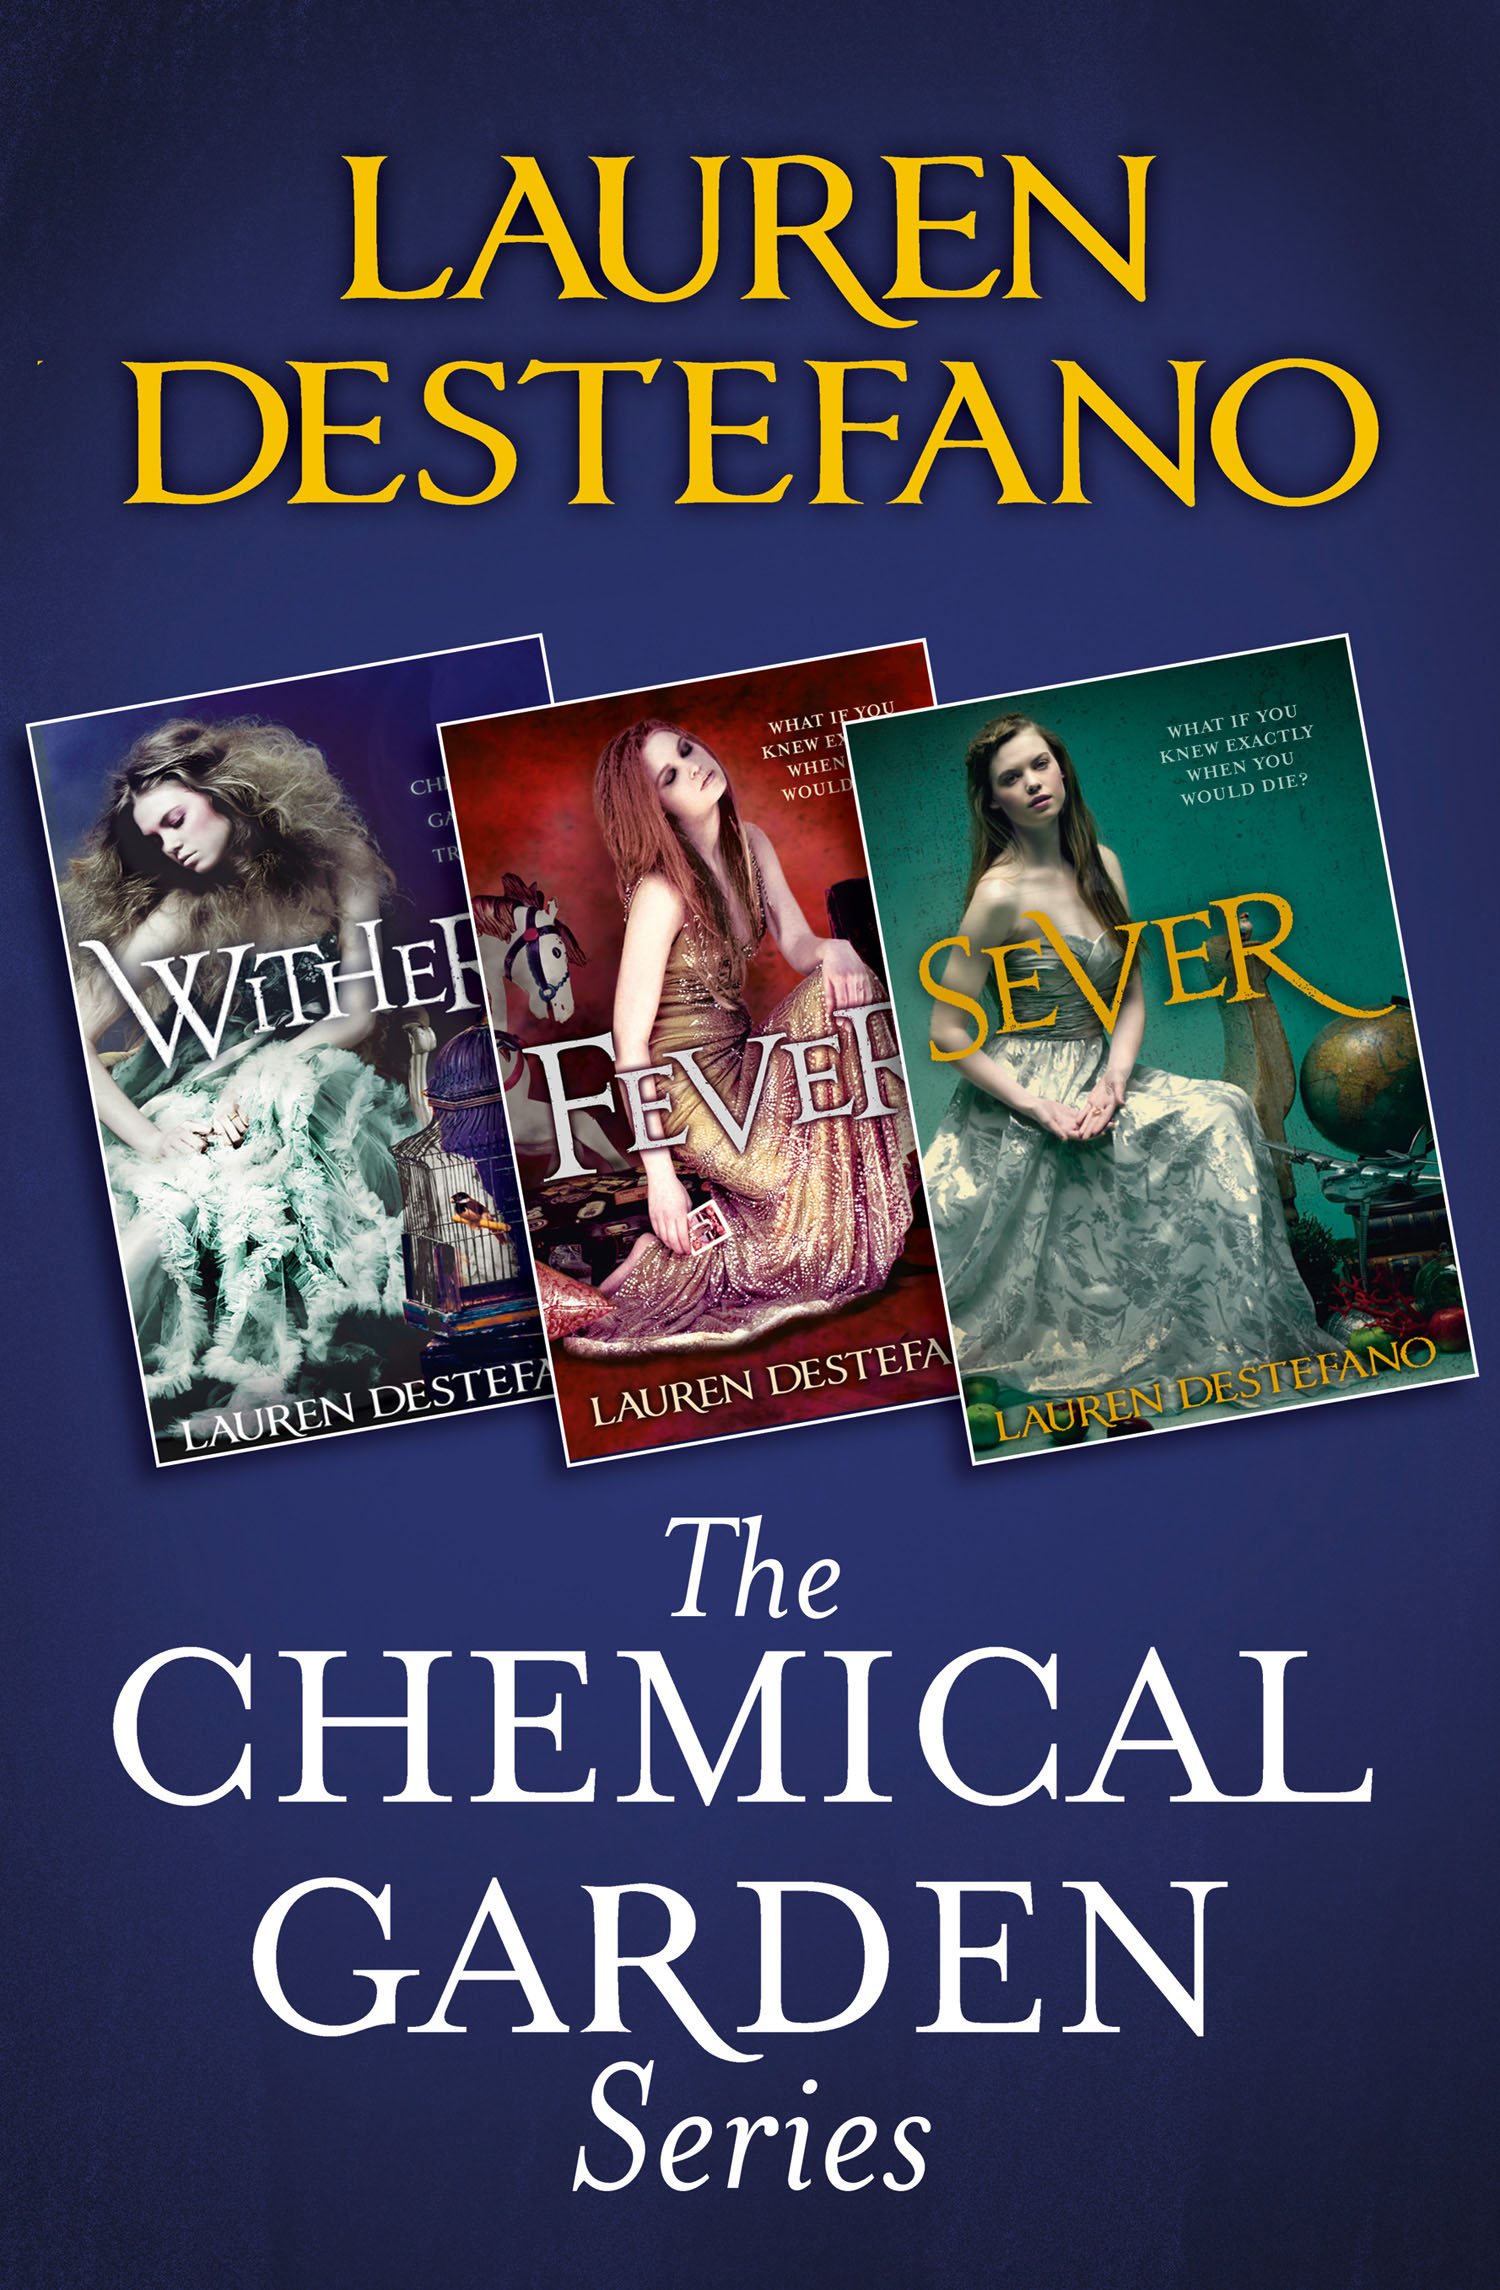 The Chemical Garden Series Books 1-3